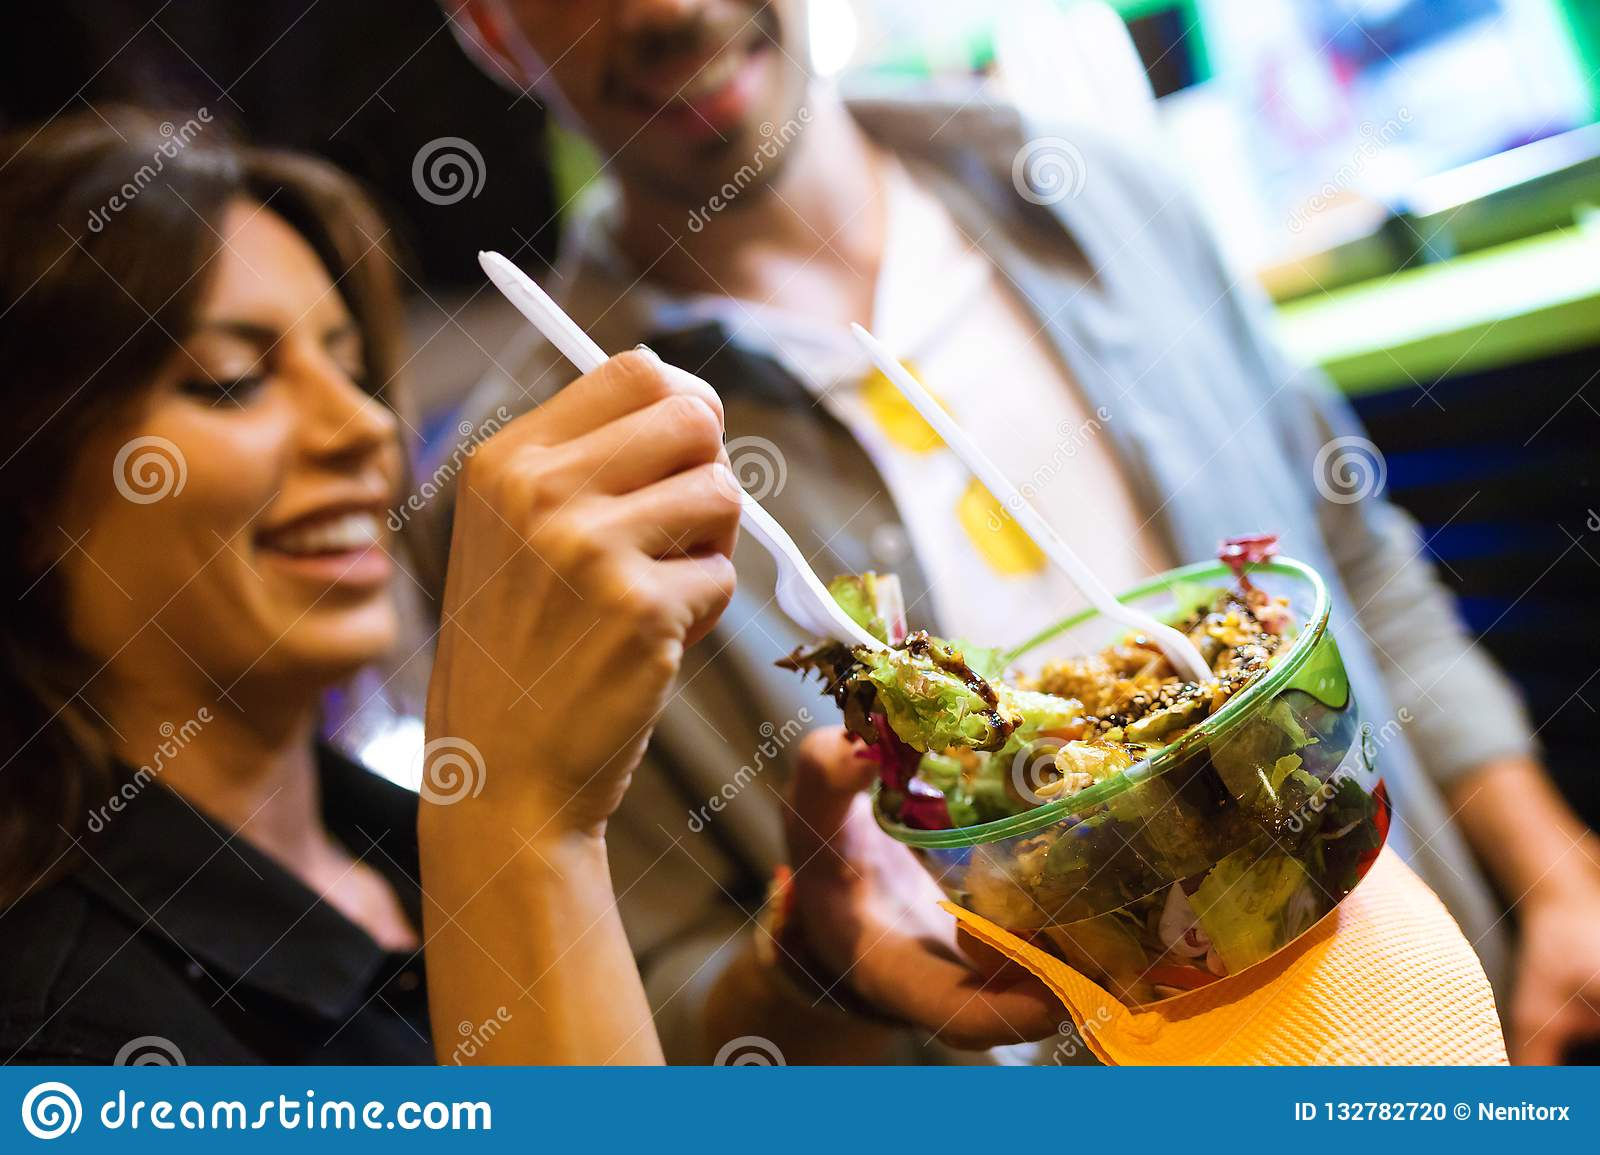 Beautiful young woman visiting eat market and eating colorful salad in the street.